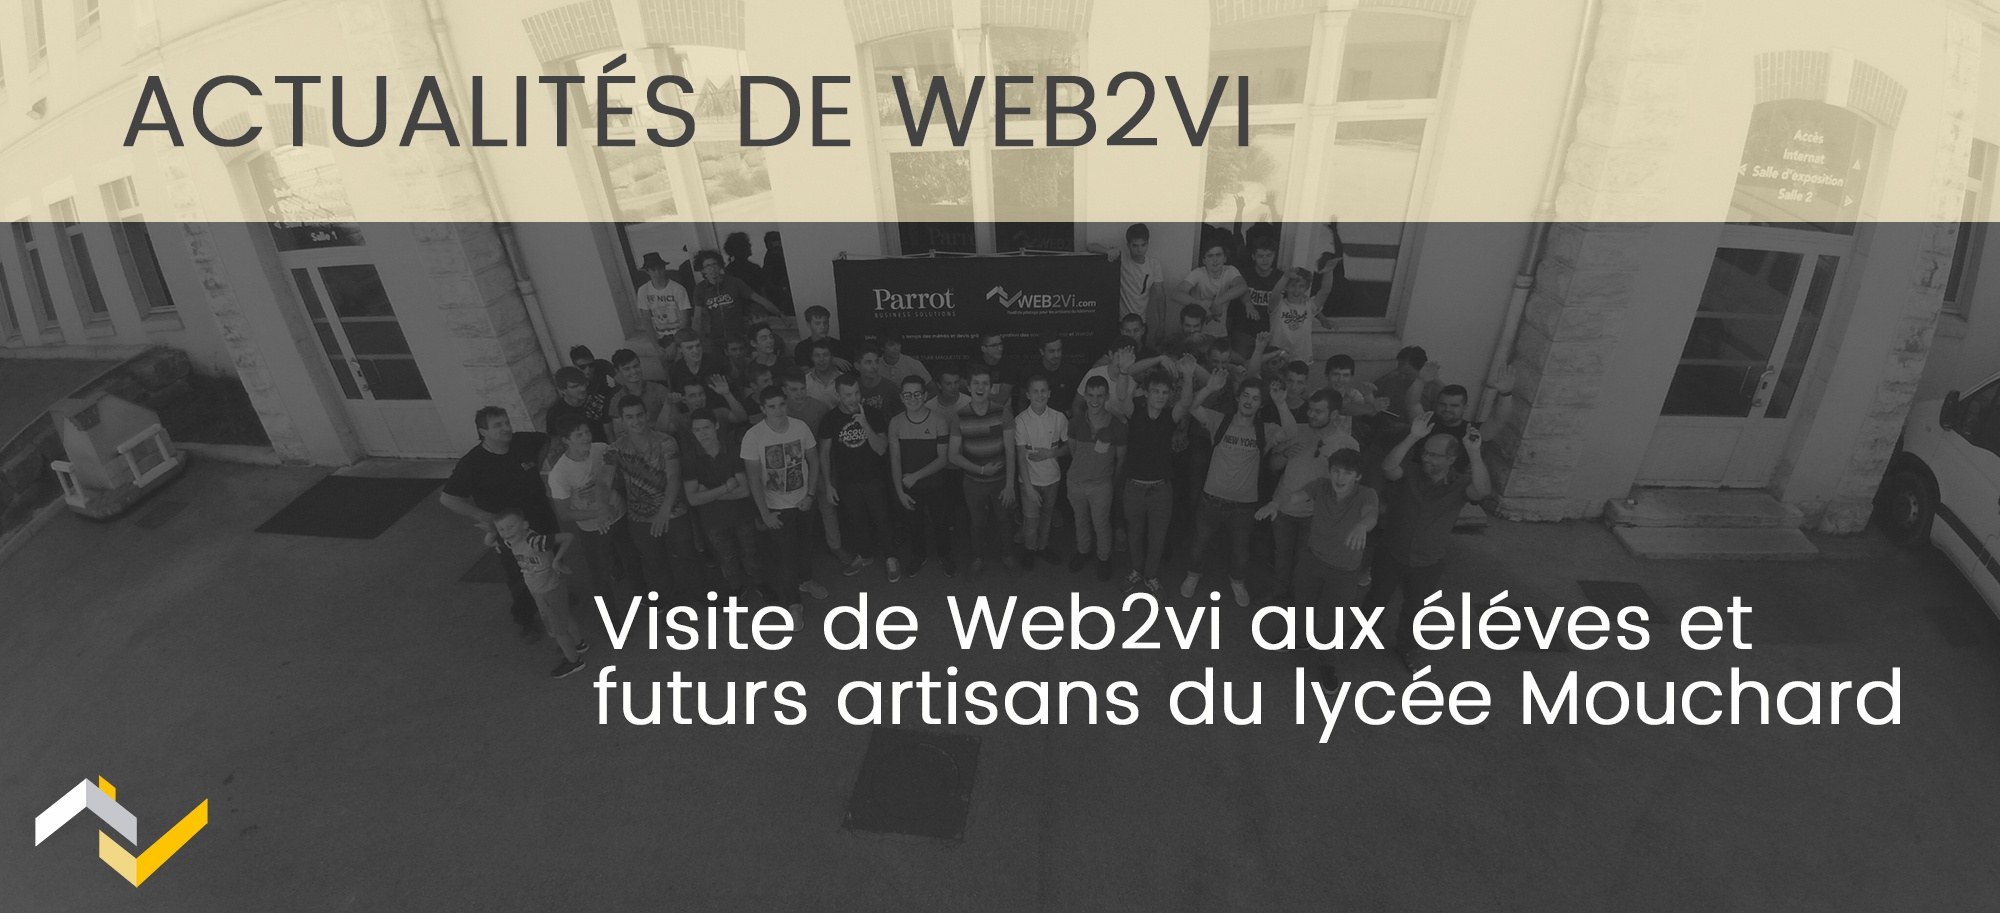 Visite du lycée Mouchard  et introduction à l'artisan 2.0 par Web2vi